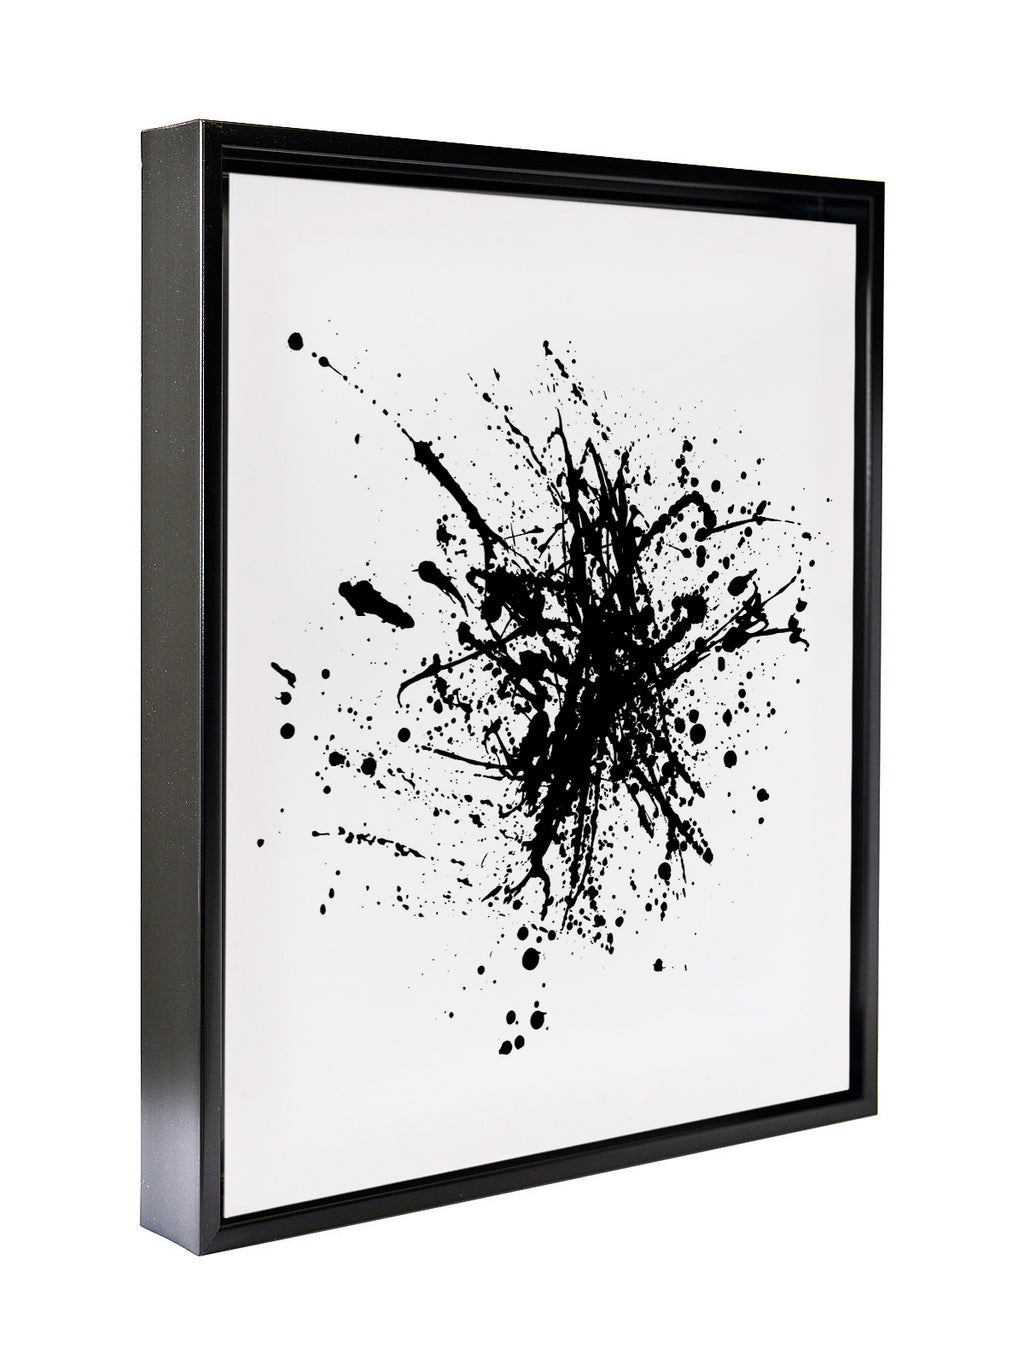 SPLASH Premium Framed Gallery Wrap By Honeytree Prints